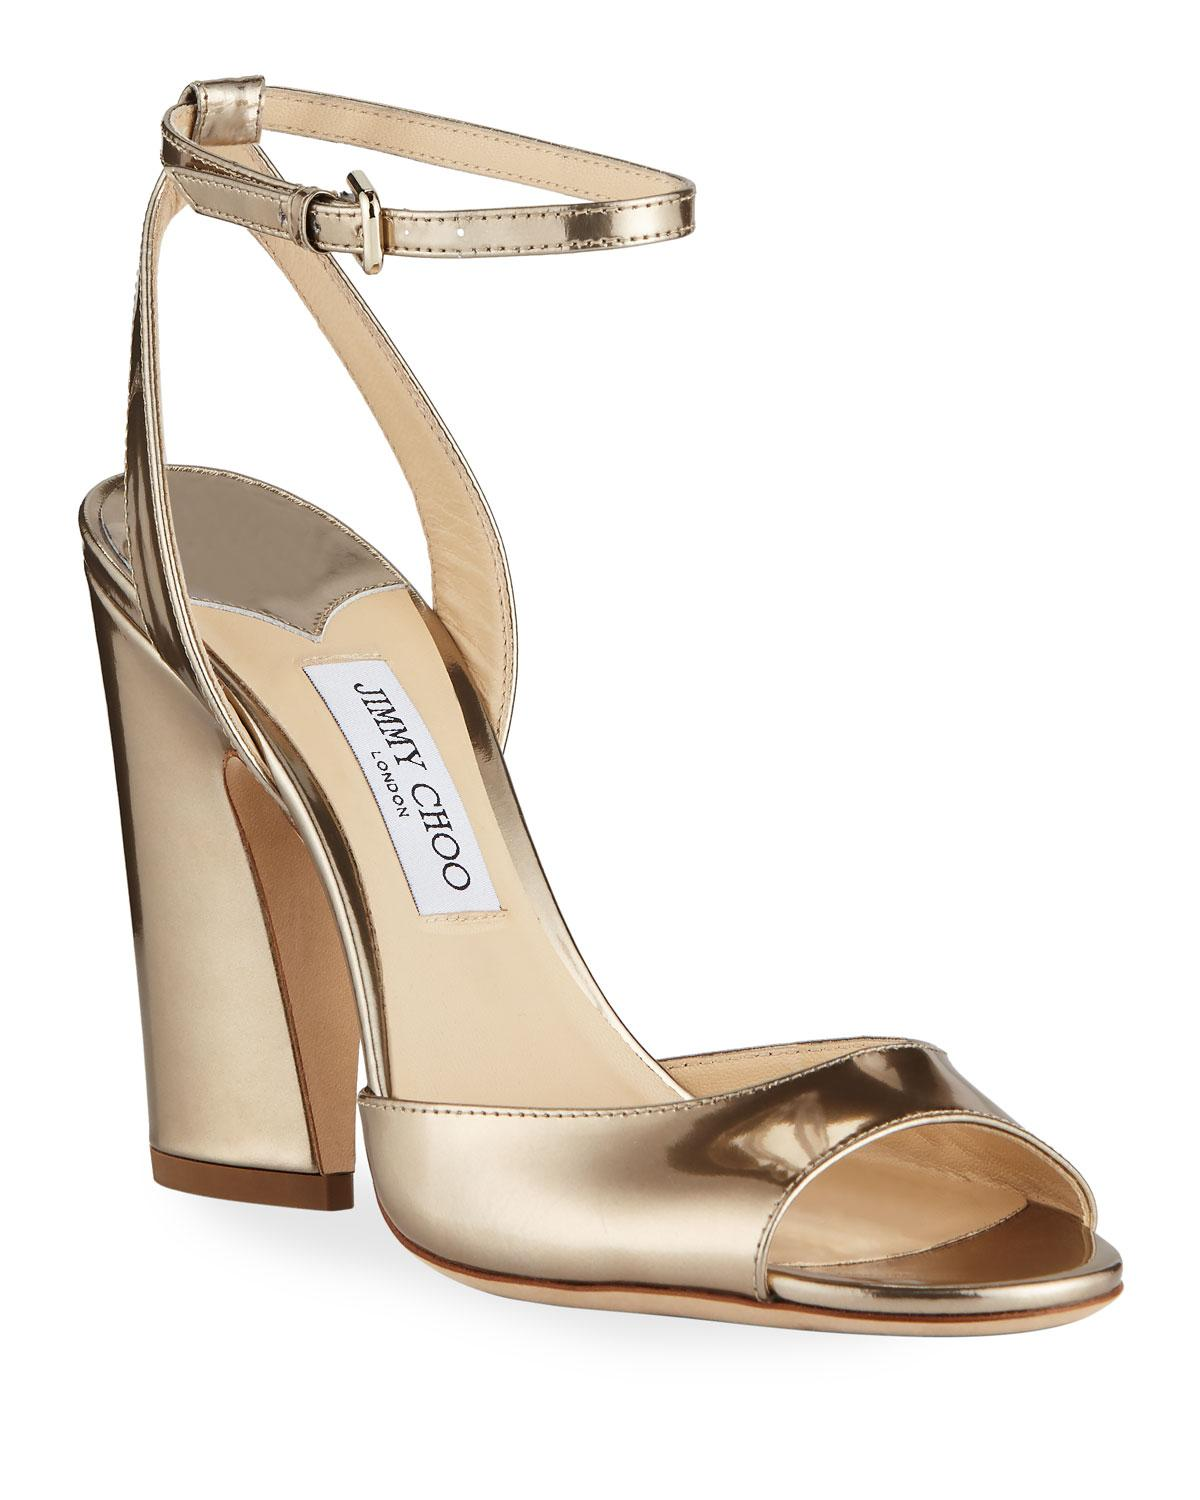 13c96430428c Jimmy Choo Miranda Metallic Leather Sandals in Metallic - Lyst